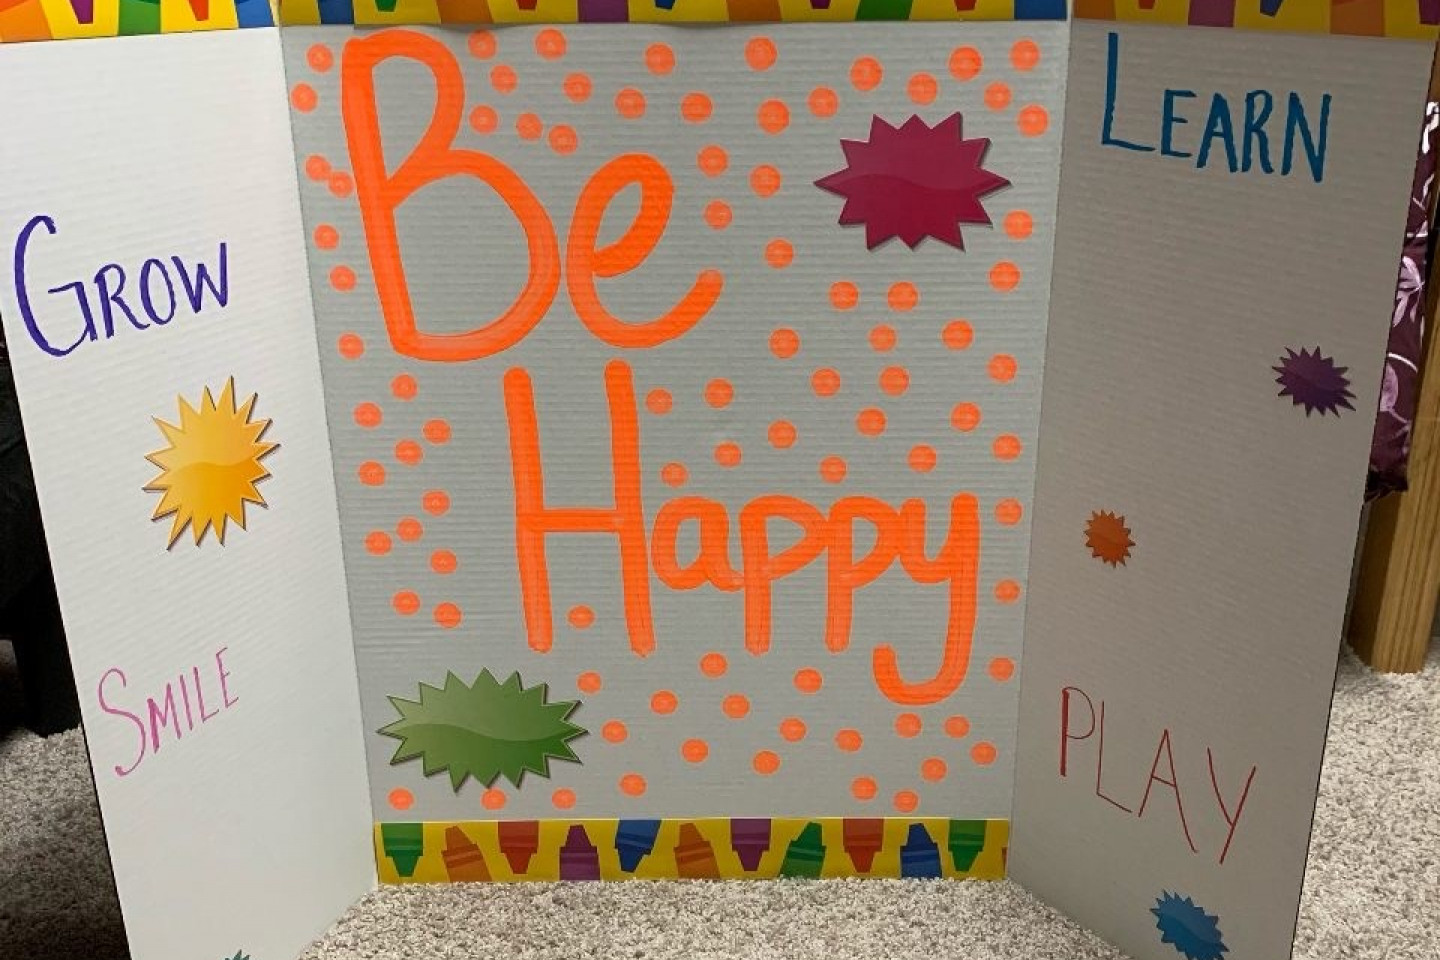 """Be Happy"" is written on a privacy screen."